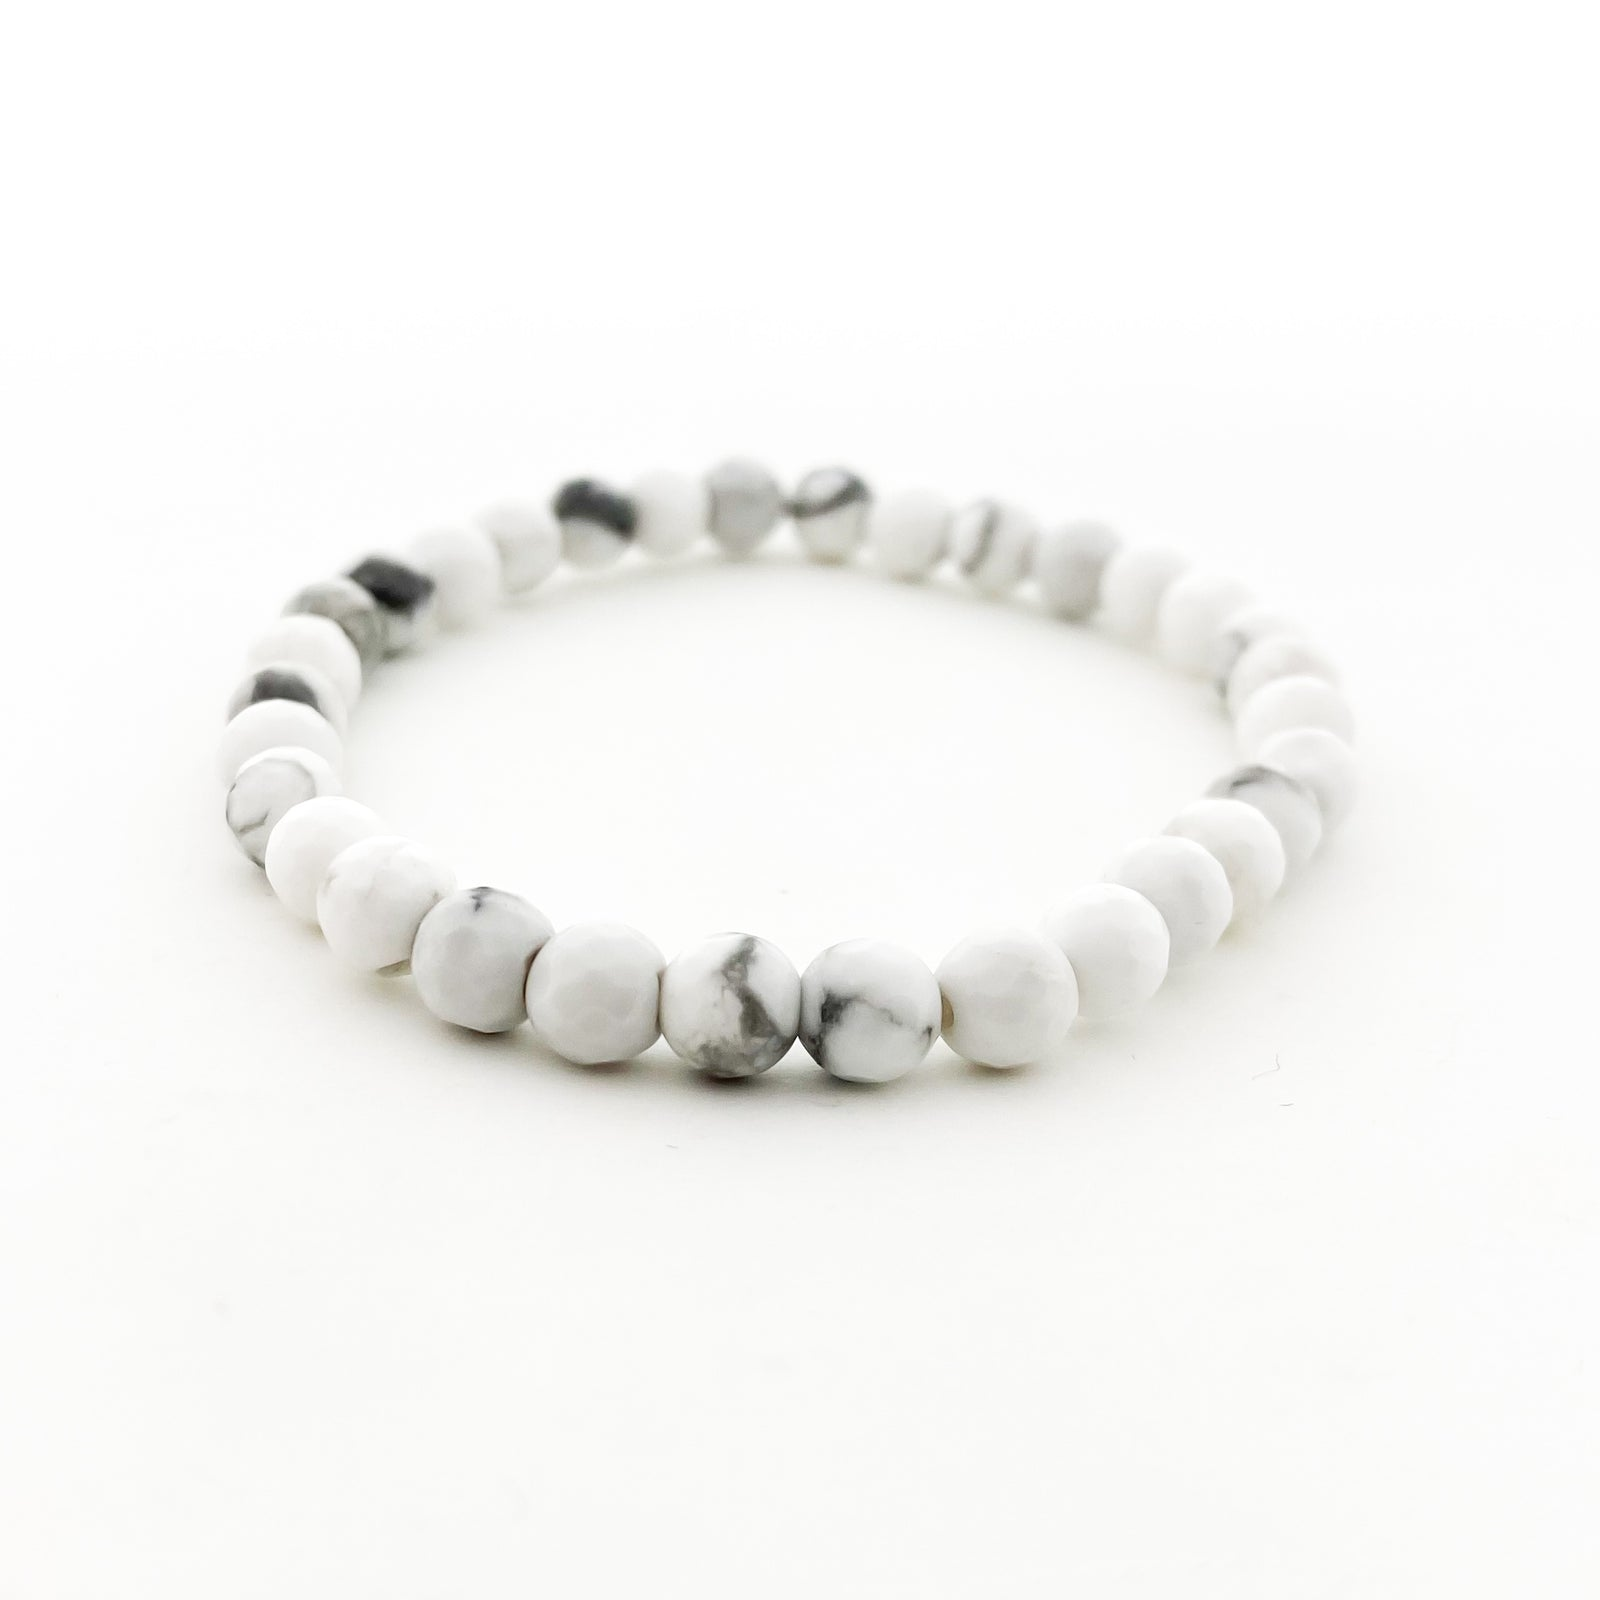 FACETED WHITE HOWLITE BRACELET | 4MM & 6MM